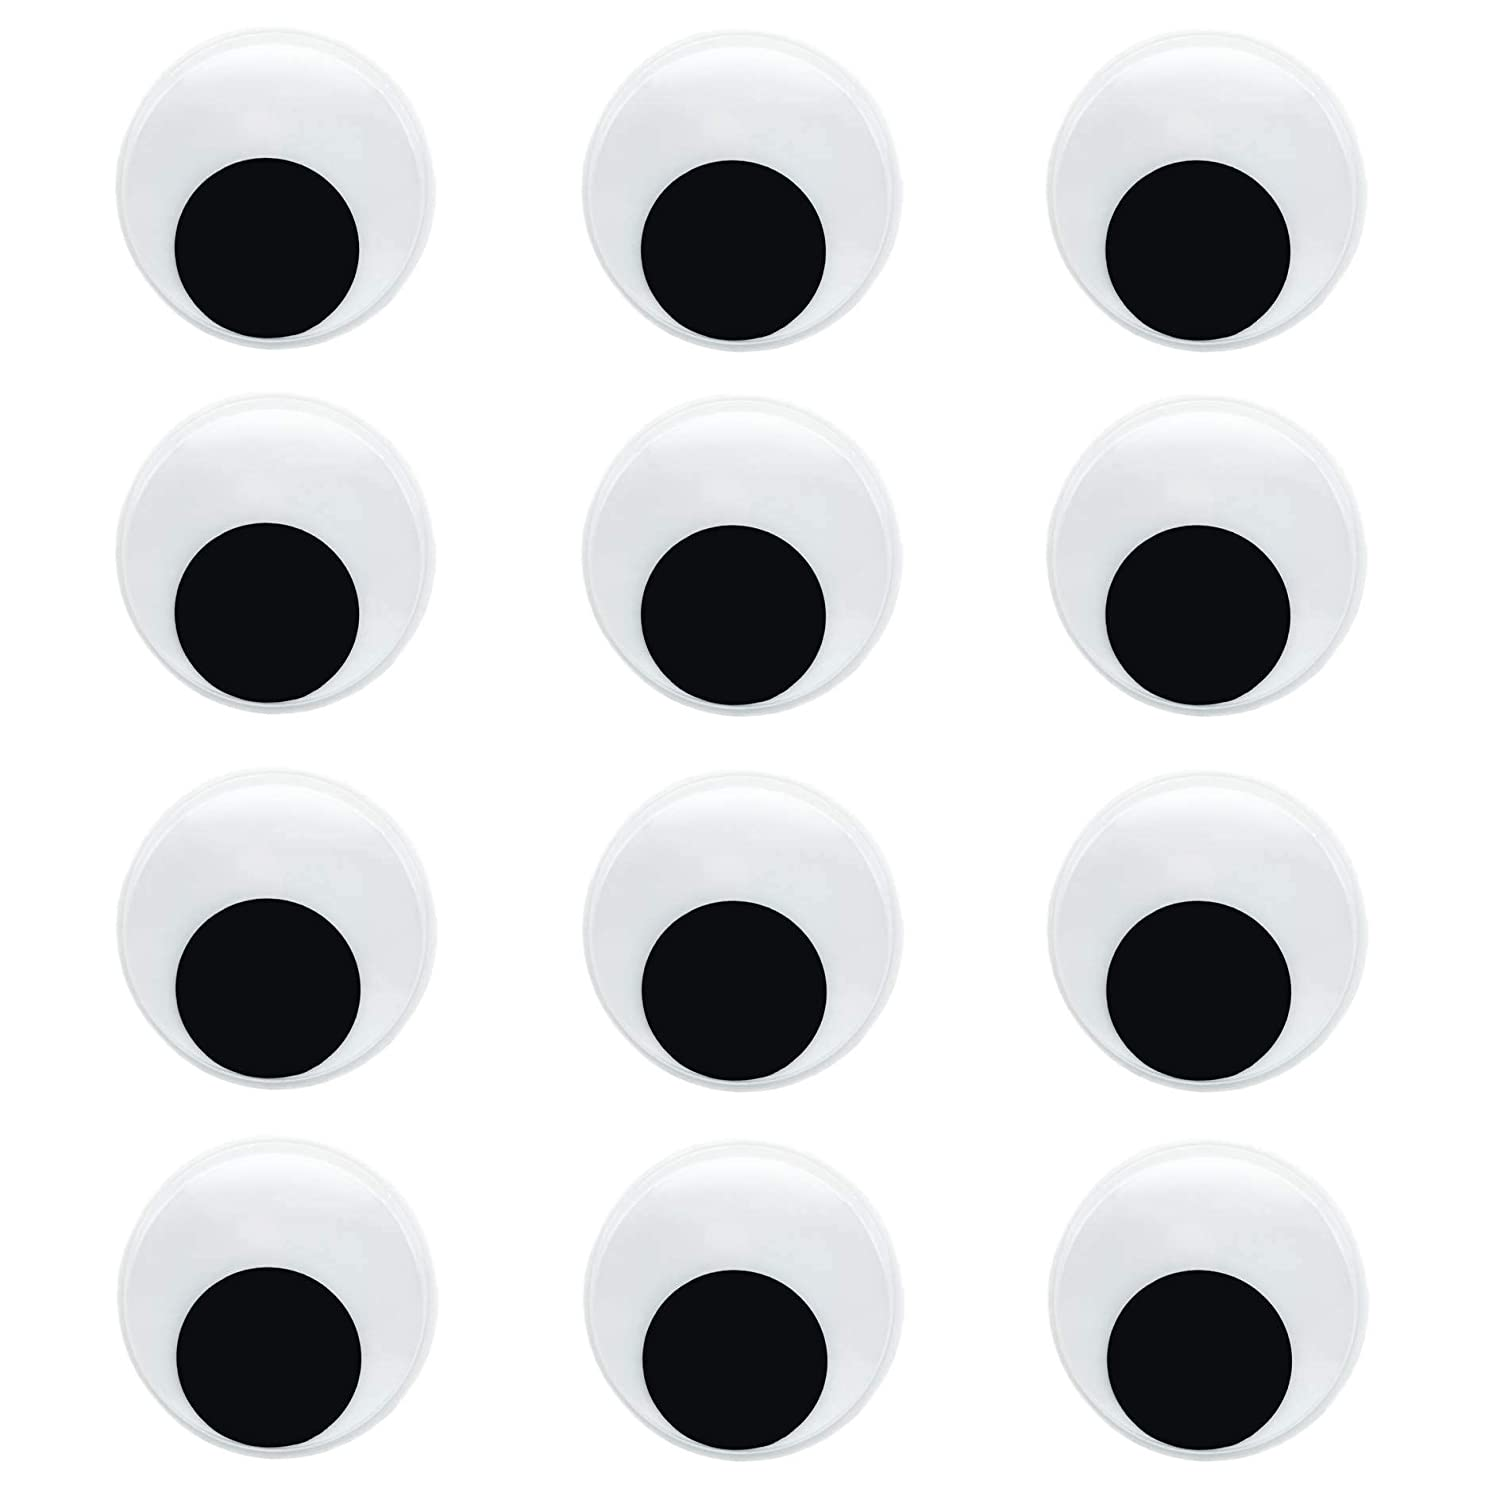 12 Pieces 2' Self-Adhesive Wiggly Eyes Googly Eyes for Craft Decorations Wiggle Googly Eyes for DIY Projects Arts and Craft Supplies JINJING